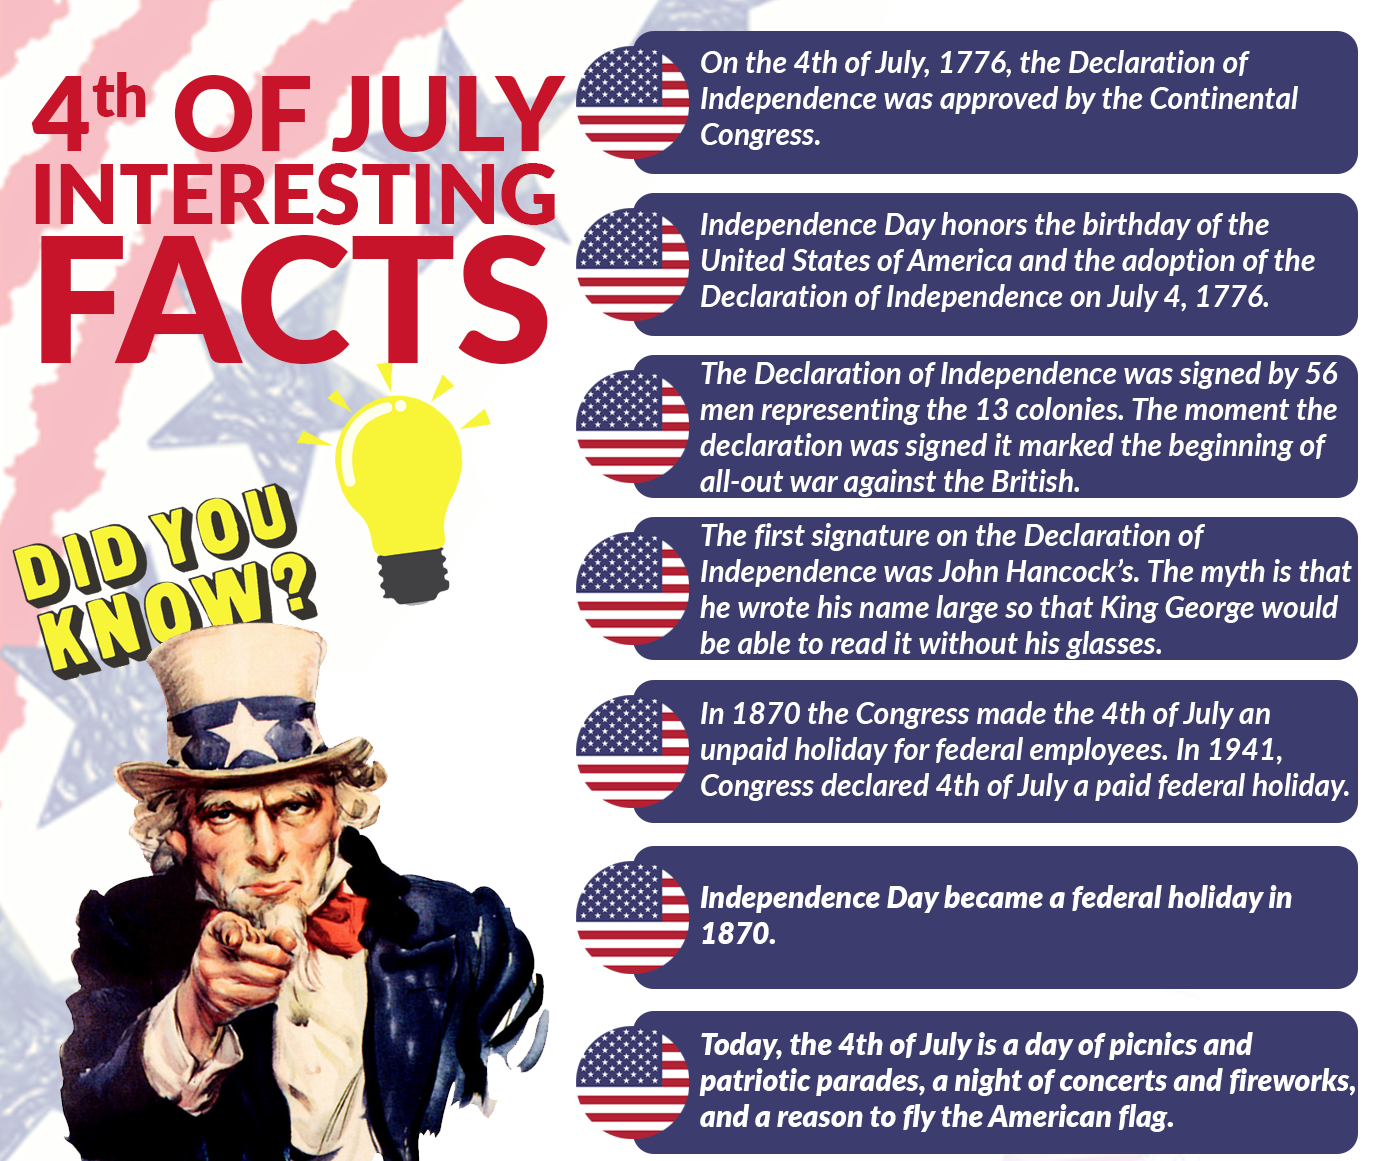 4th of July Interesting Facts When was America Founded